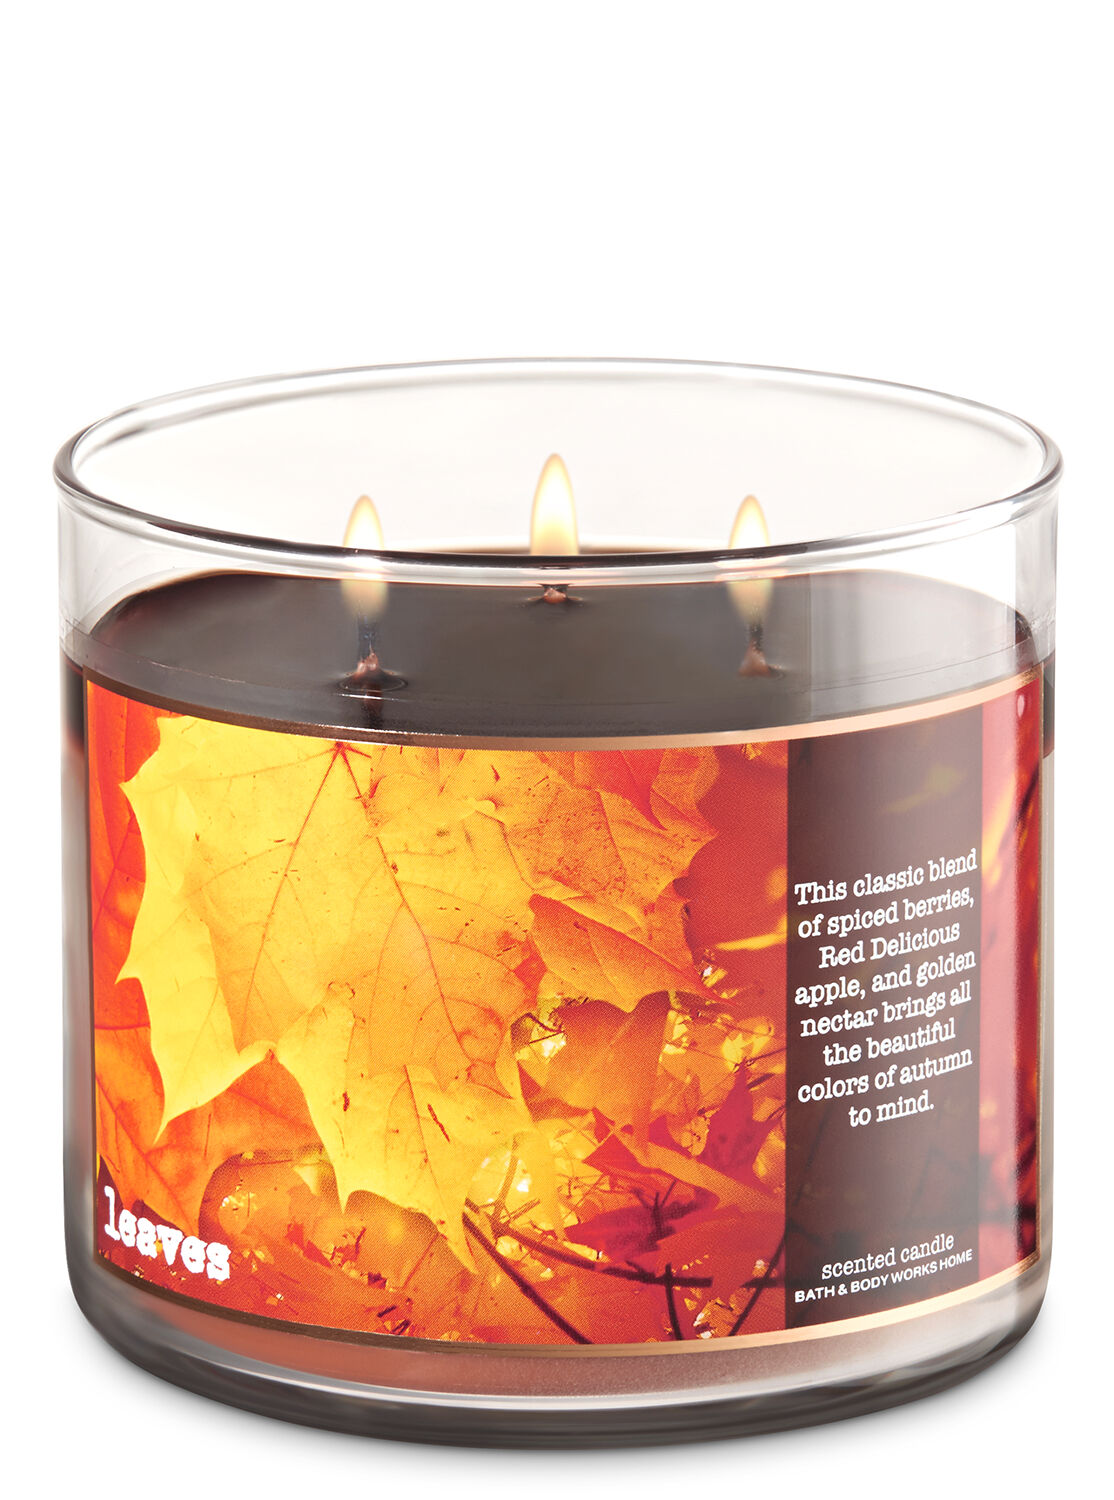 Bath Pictures 3-wick candles | bath & body works